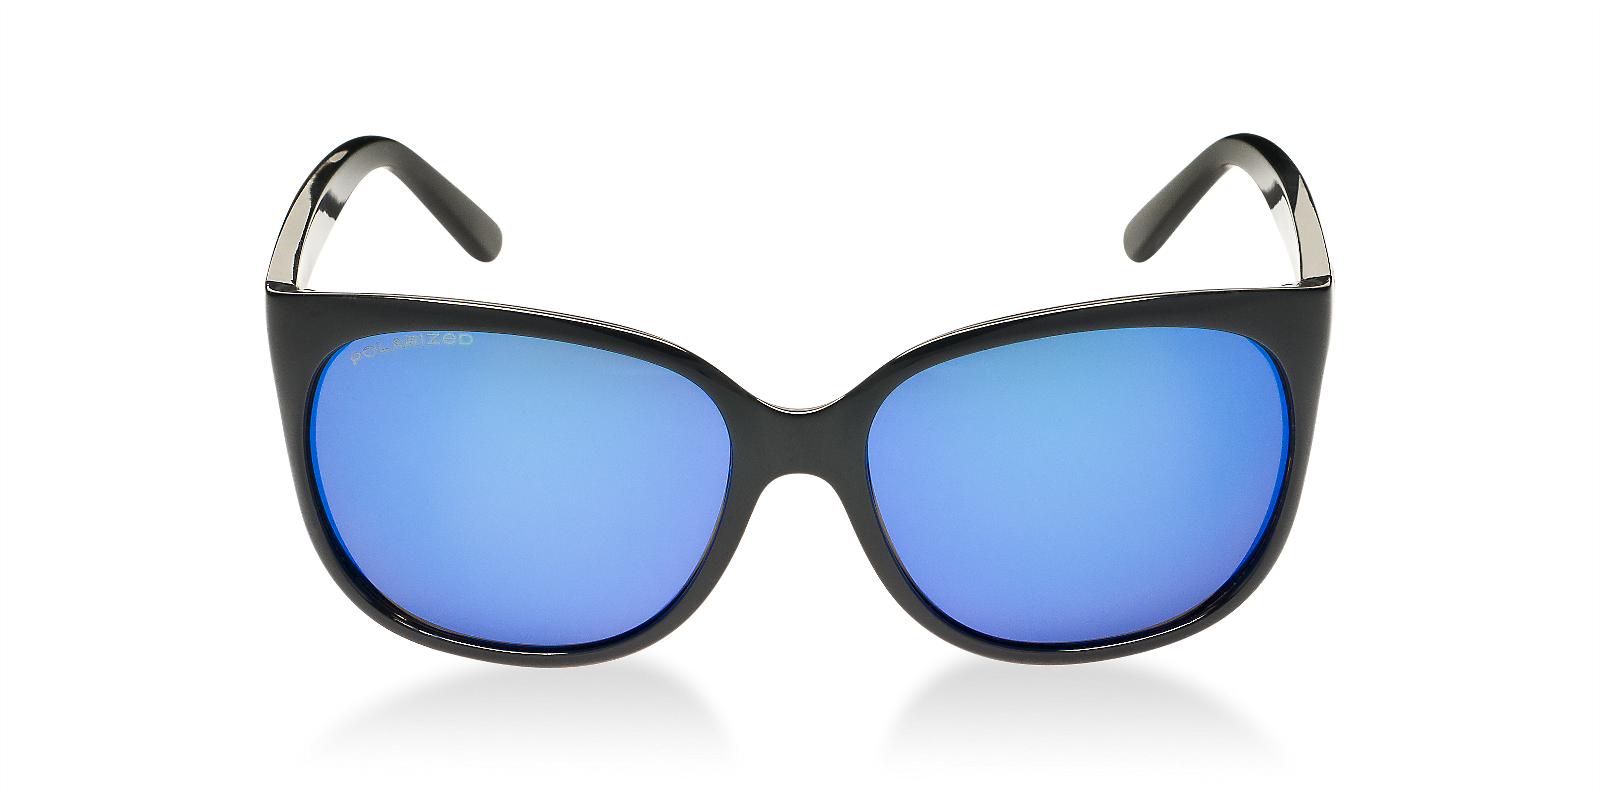 Sunny clipart chasma. Sunglasses png images download